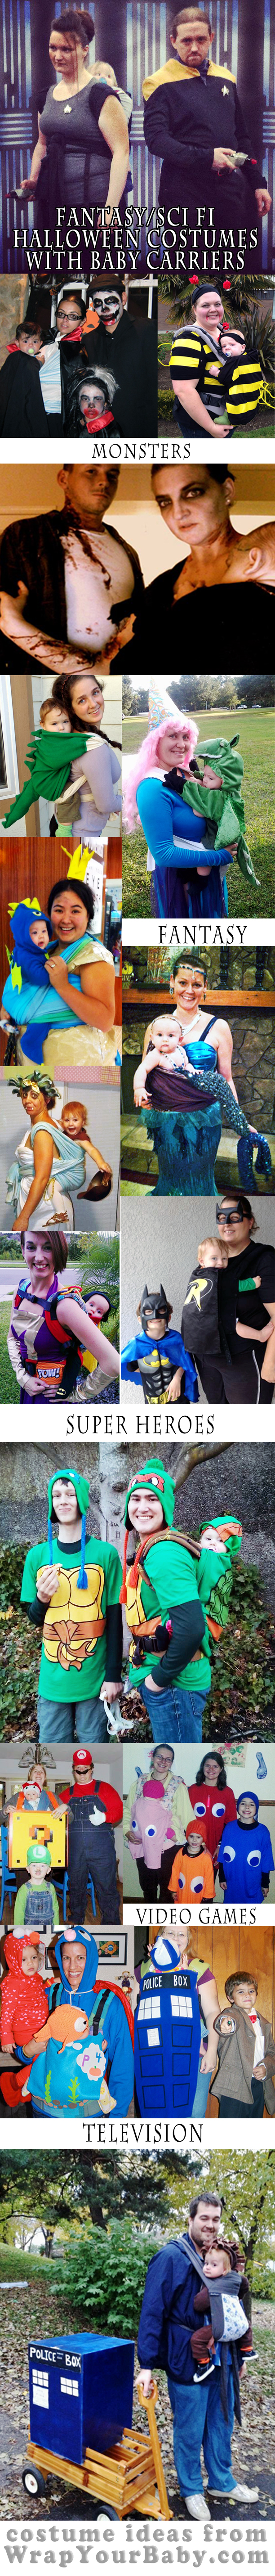 Babywearing Costumes: Fantasy, Science Fiction, Horror, Monster, Super Hero